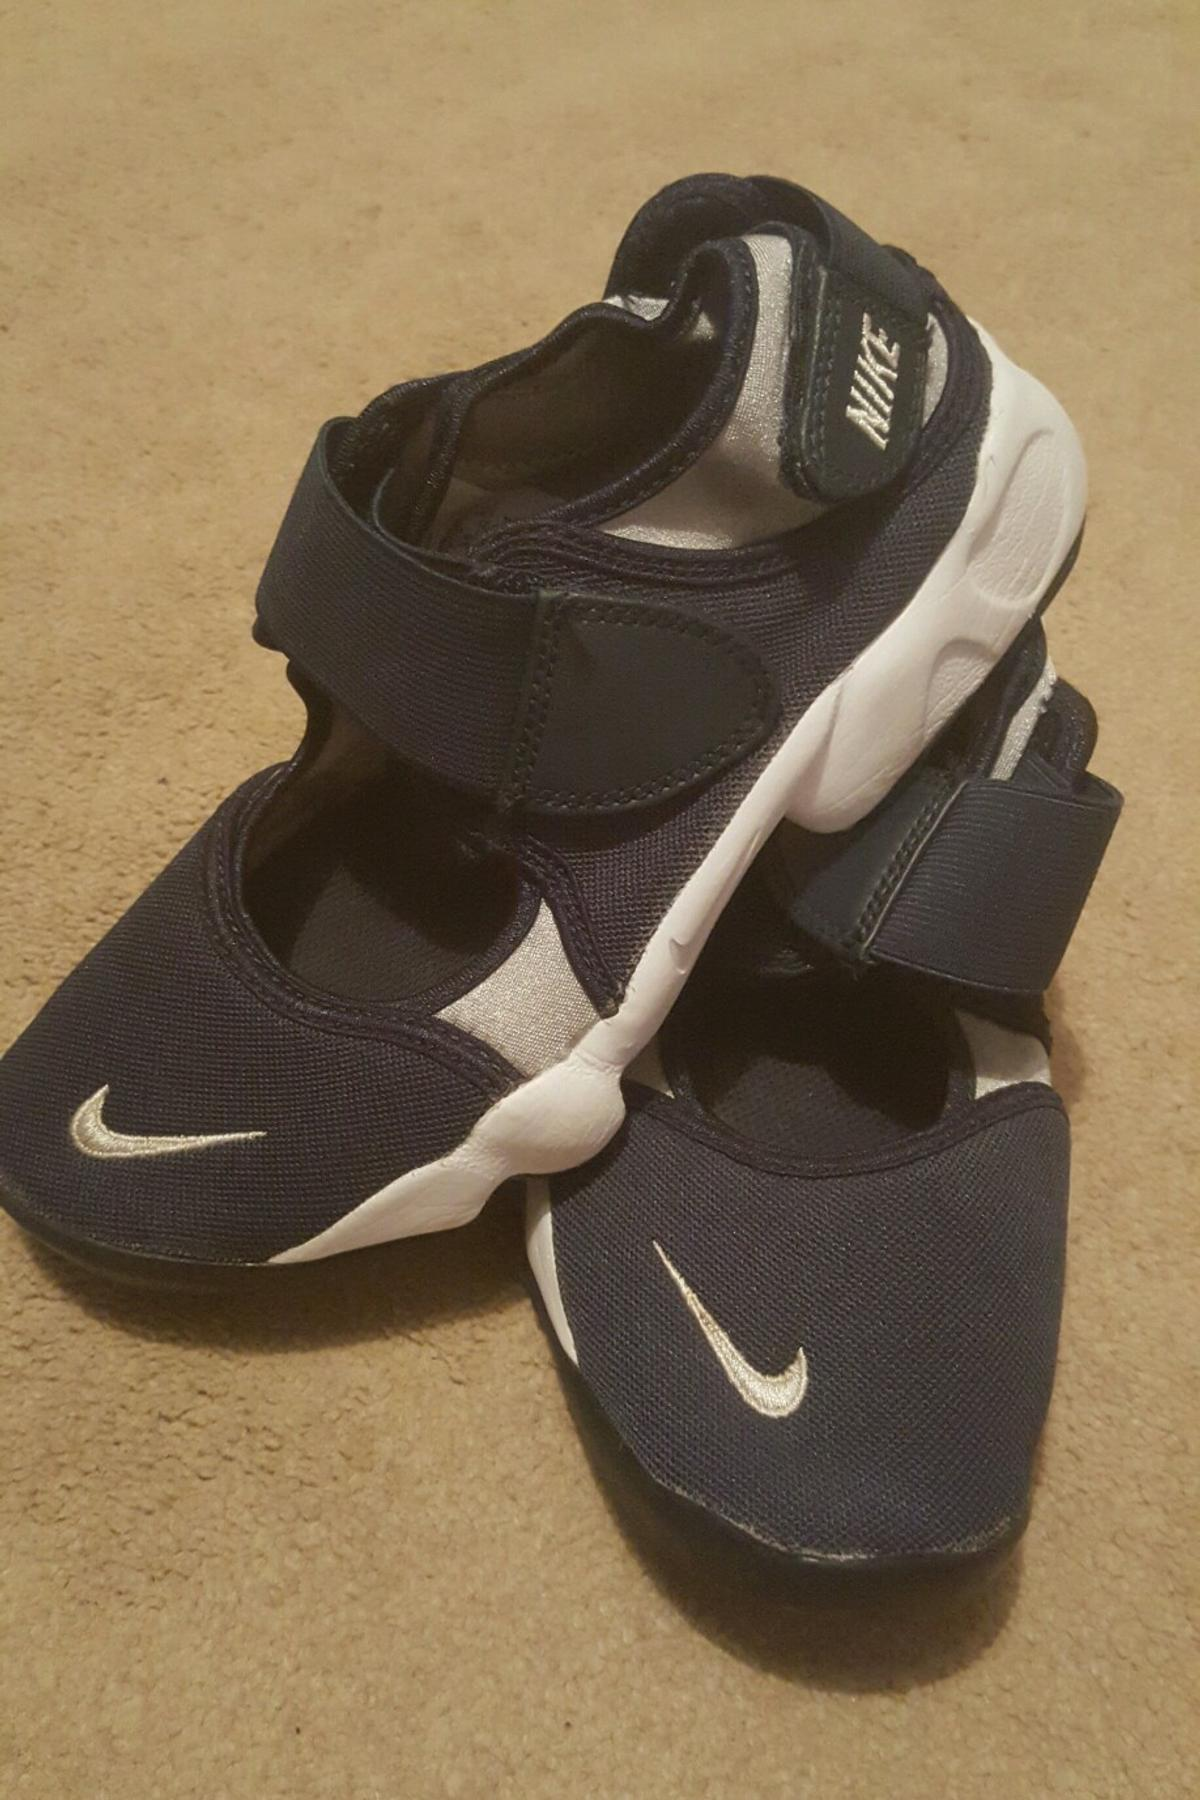 18d69d56e0aa Boys Nike Sandal trainers size 3.5 in NP19 Newport for £13.50 for ...